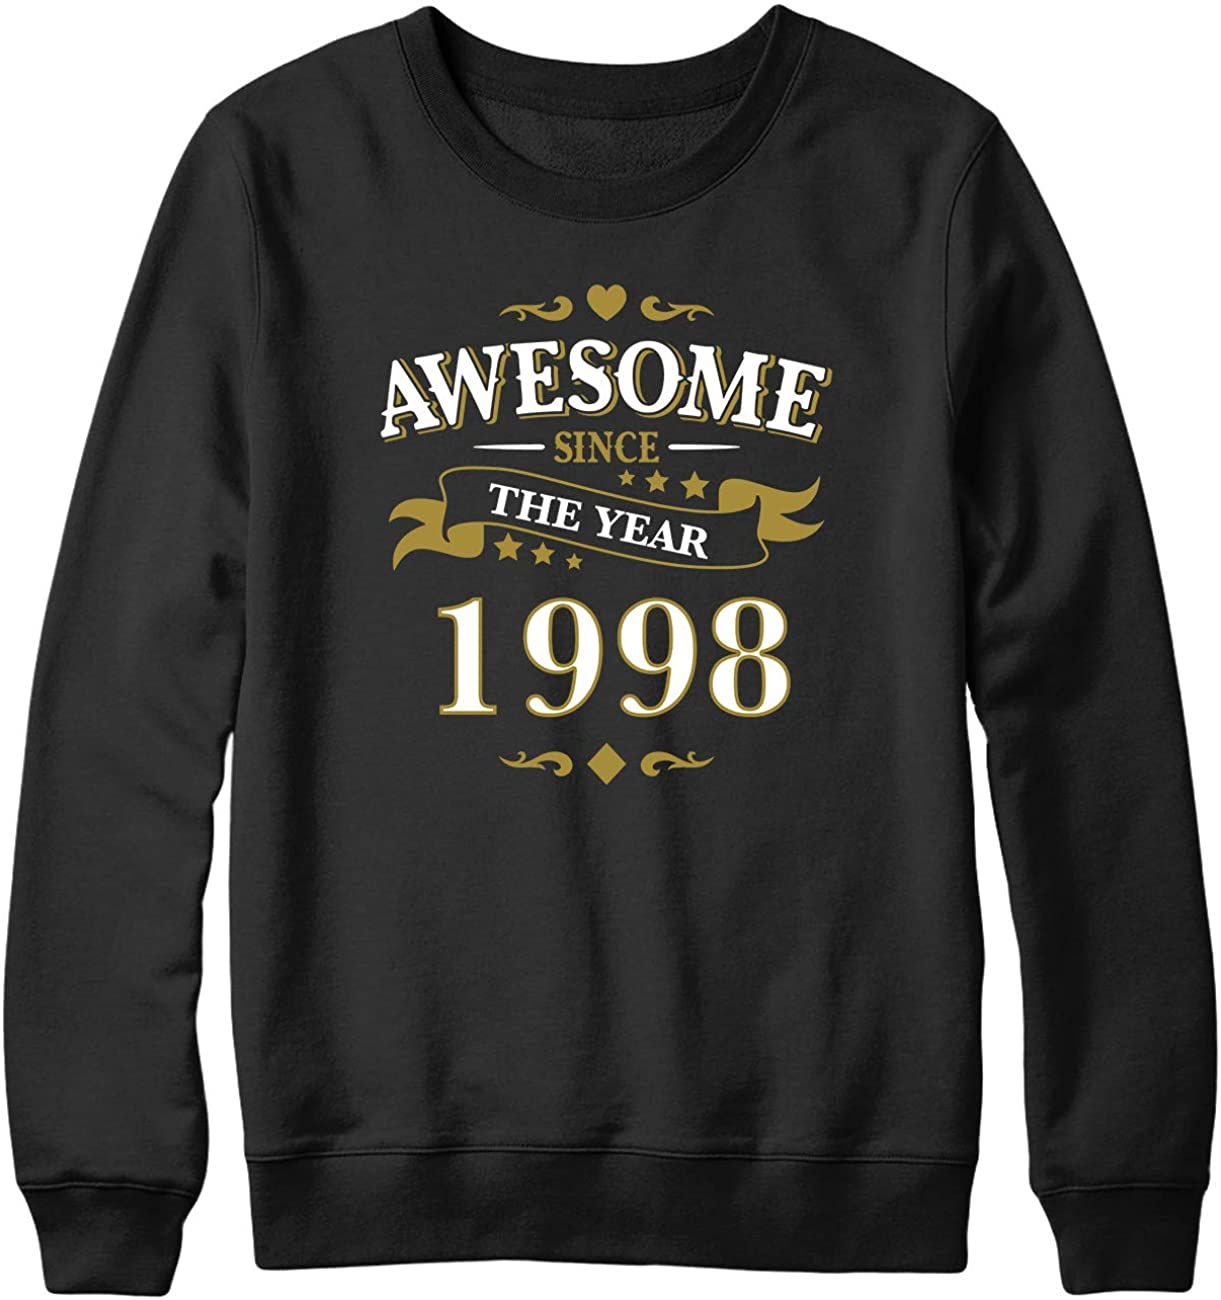 Daytripper Clothing Awesome from The Year 1998, Regalo de cumpleaños para Hombre, Sudadera Unisex